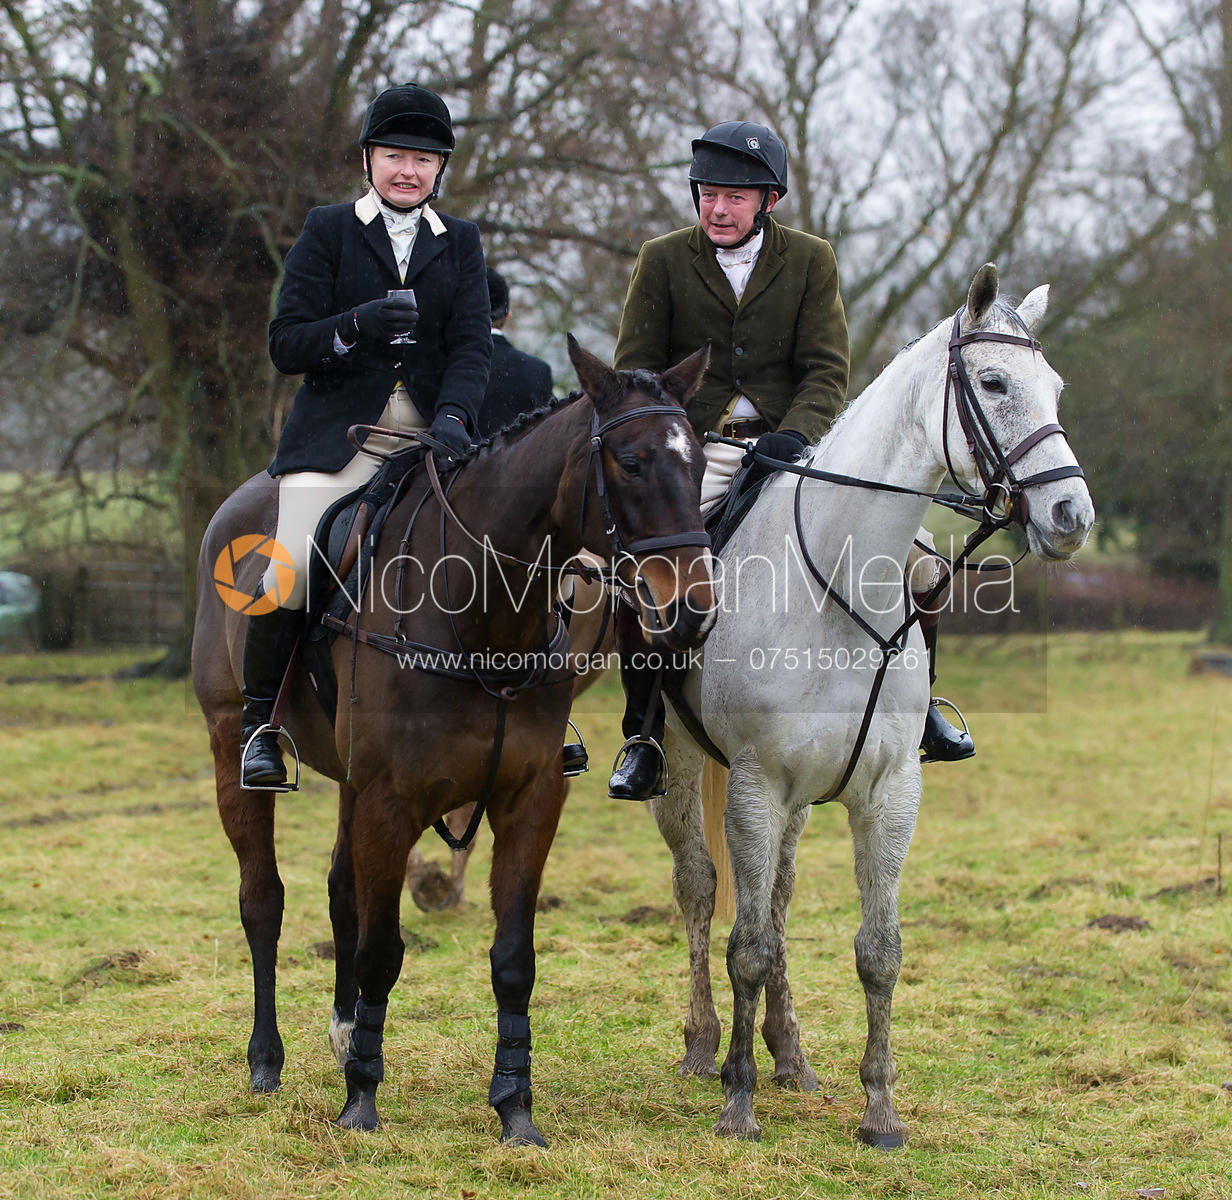 Adrienne Coombe and Andrew Collie - The Cottesmore Hunt at Belton-in-Rutland 21/12